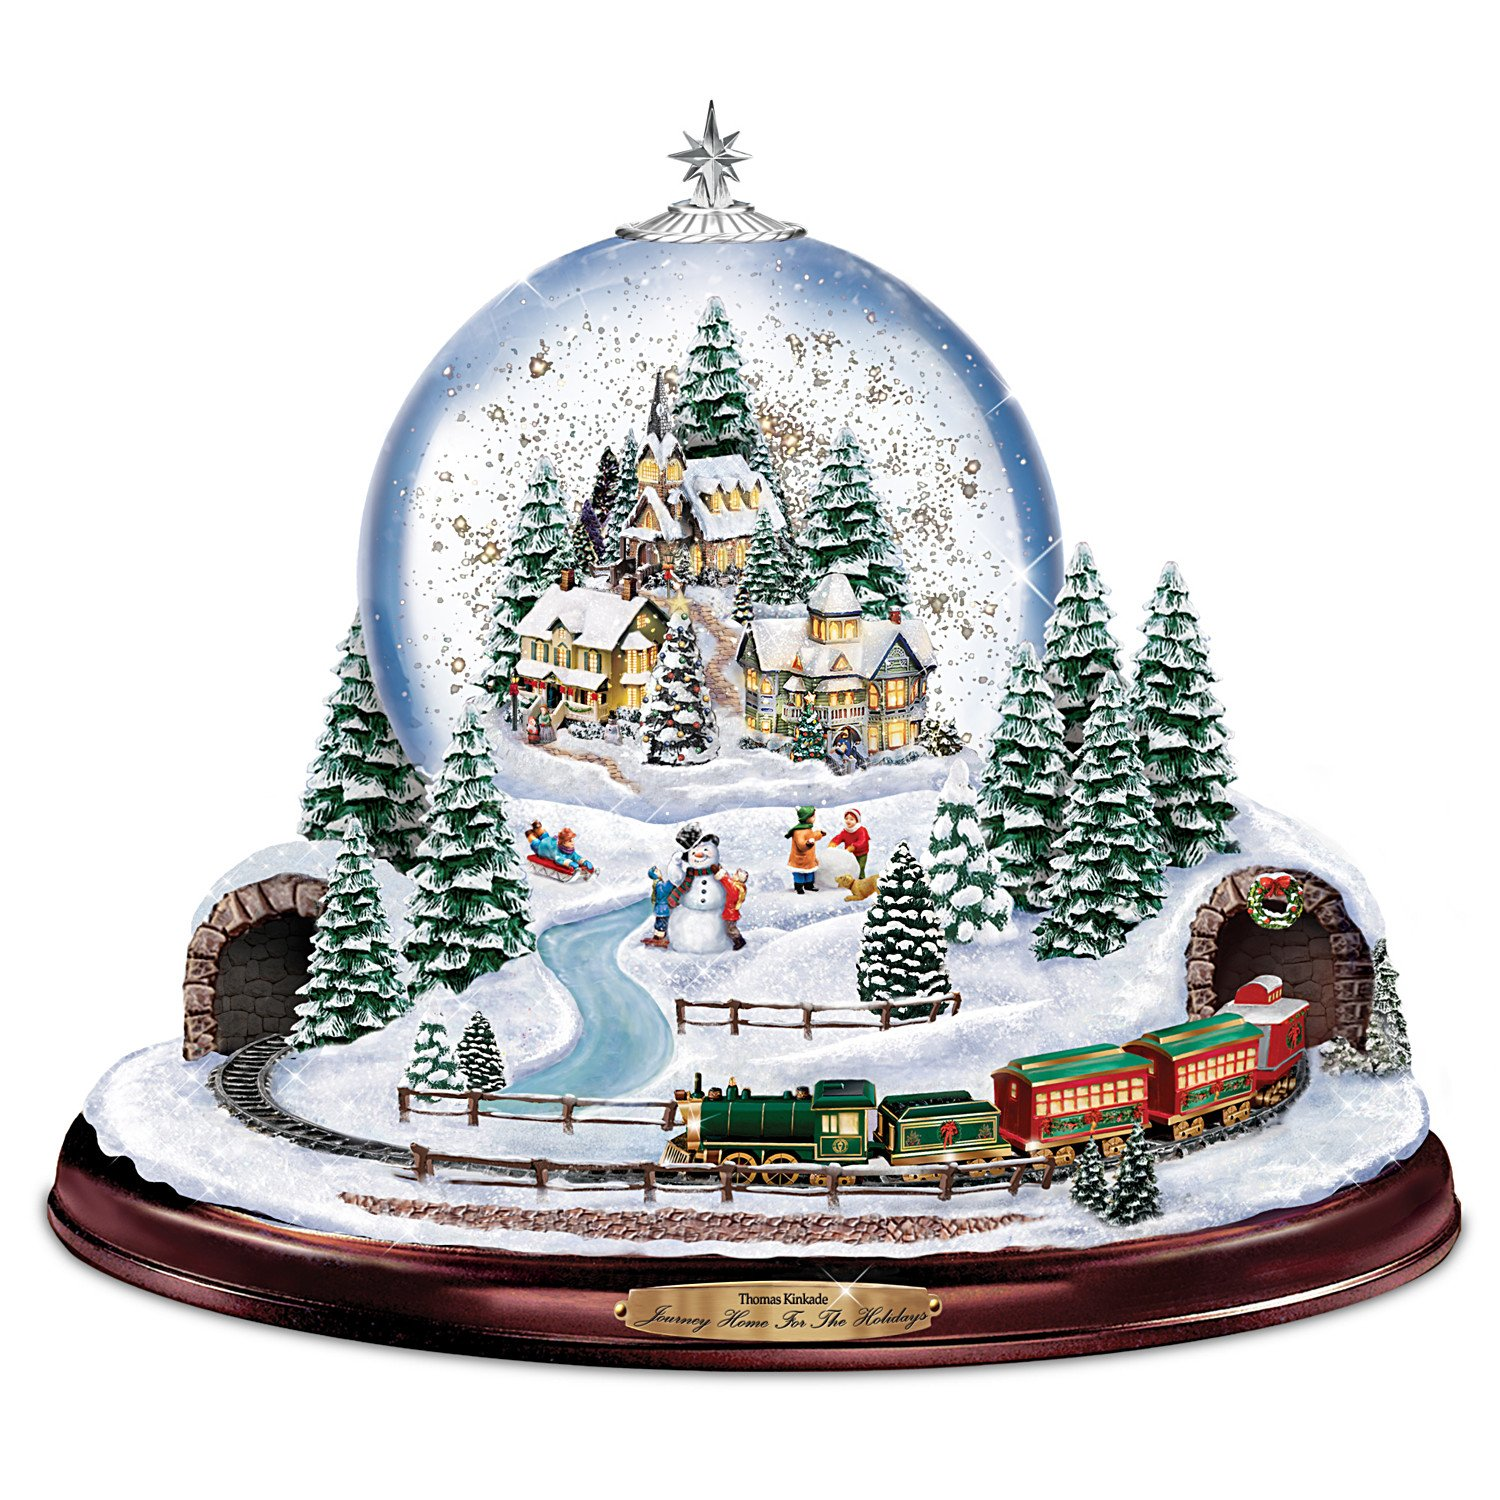 Thomas Kinkade Home for the Holidays Snowglobe: Lights Motion and Music by The Bradford Exchange by Bradford Exchange